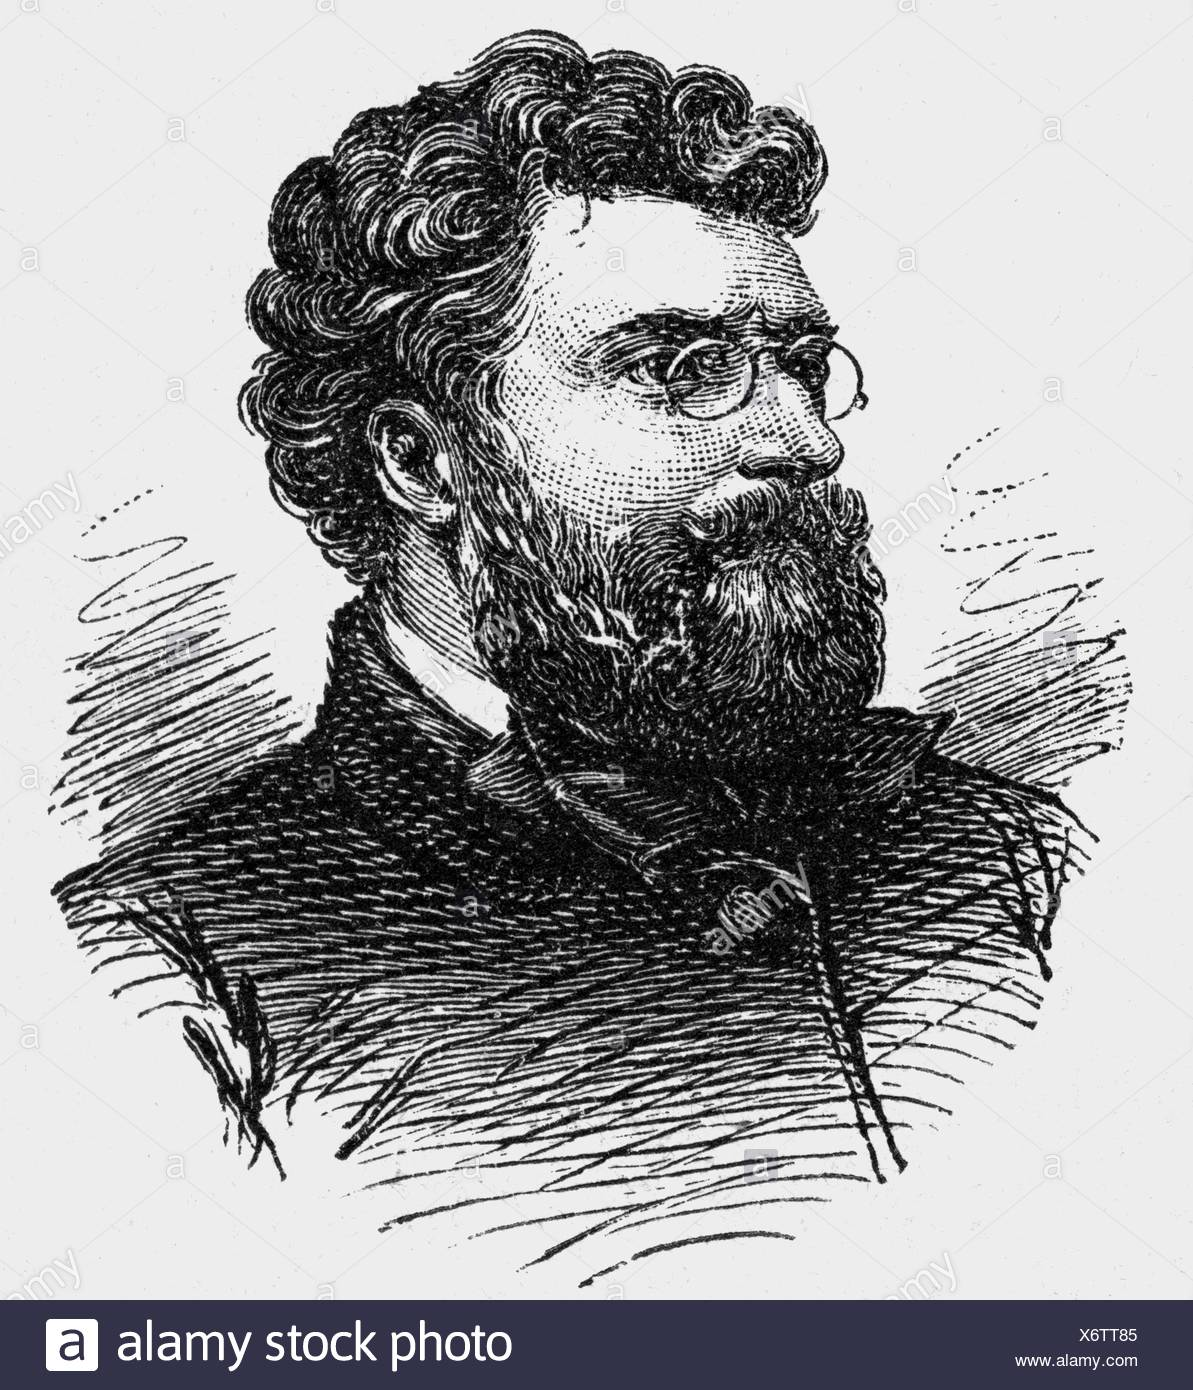 the life of georges bizet a french composer of the romantic era Georges bizet biography georges bizet (october 25, 1838 - june 3, 1875), was a french composer of the romantic era known for his opera carmen besides this stay in rome, bizet lived in the paris area for his entire life following his stay in rome, he returned to paris where he dedicated himself to.